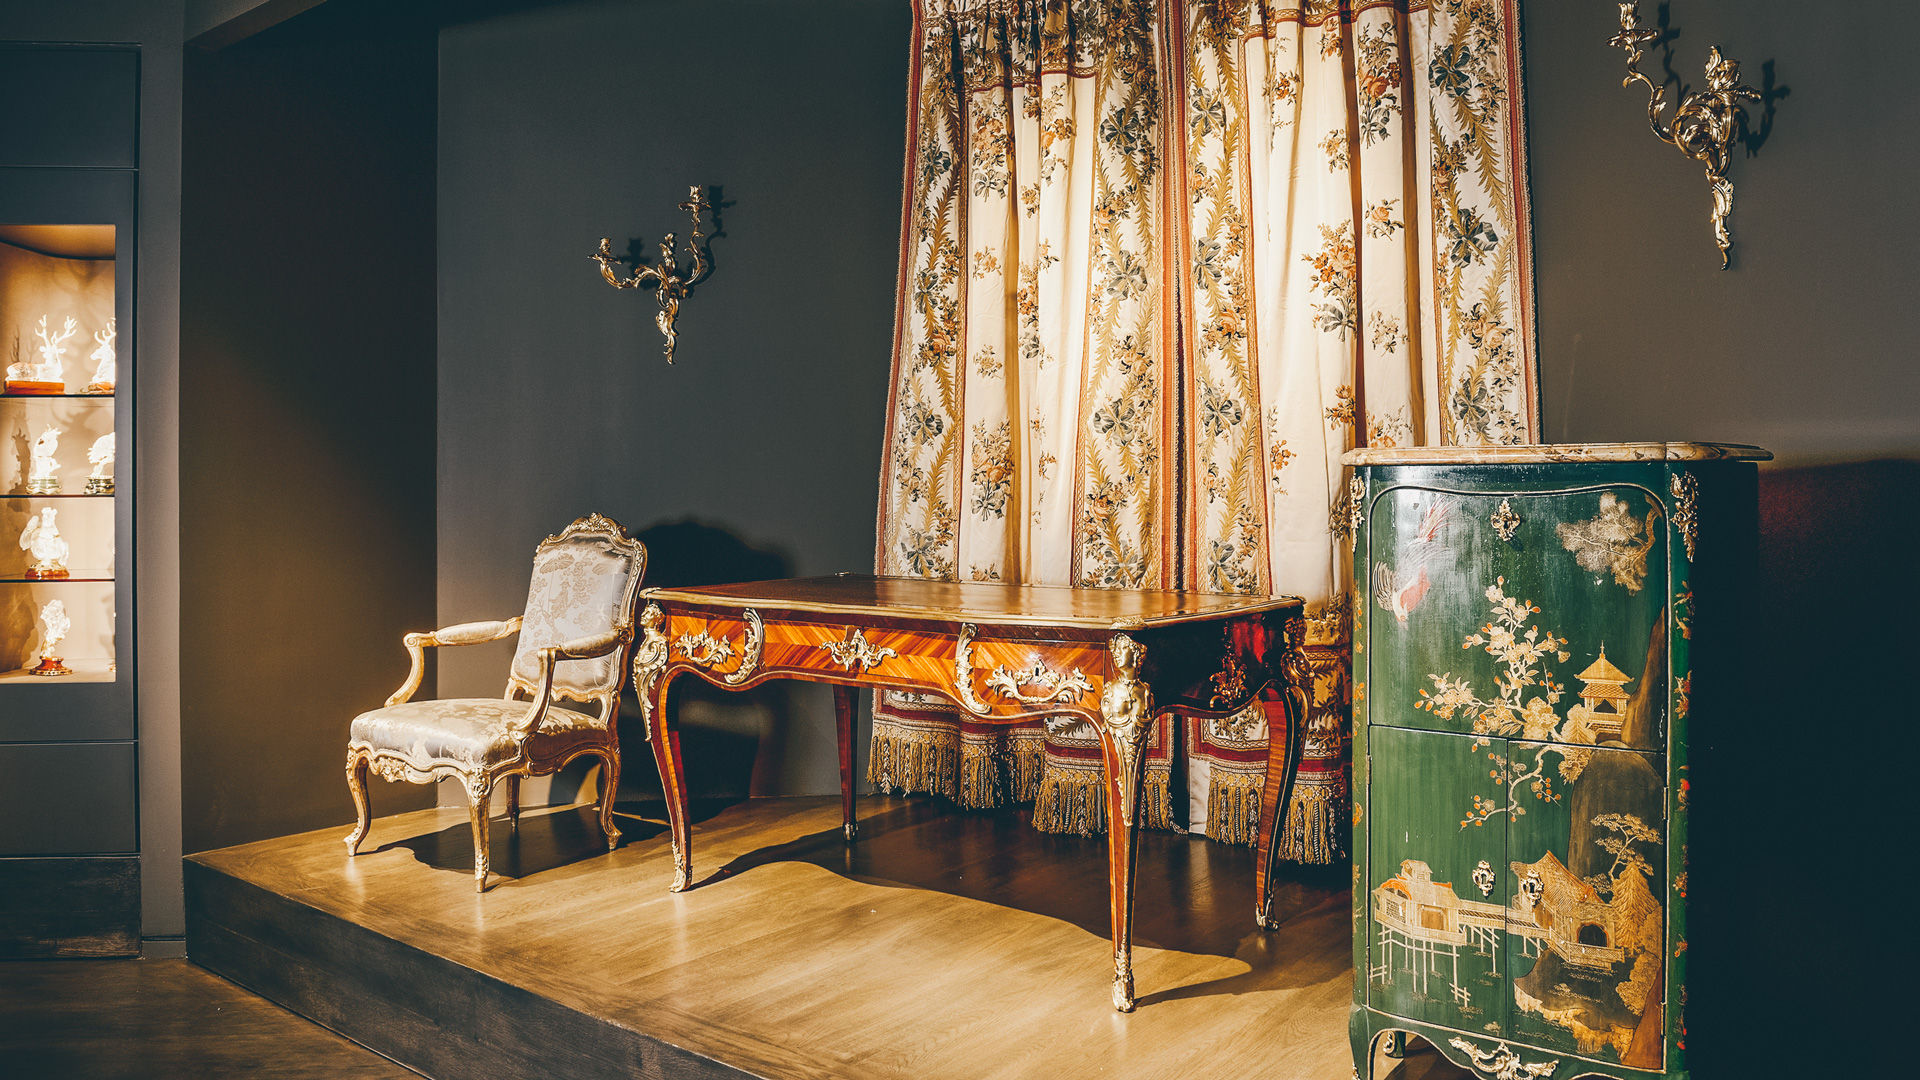 Collection of French furniture, of the most famous ébénistes from the 18th century